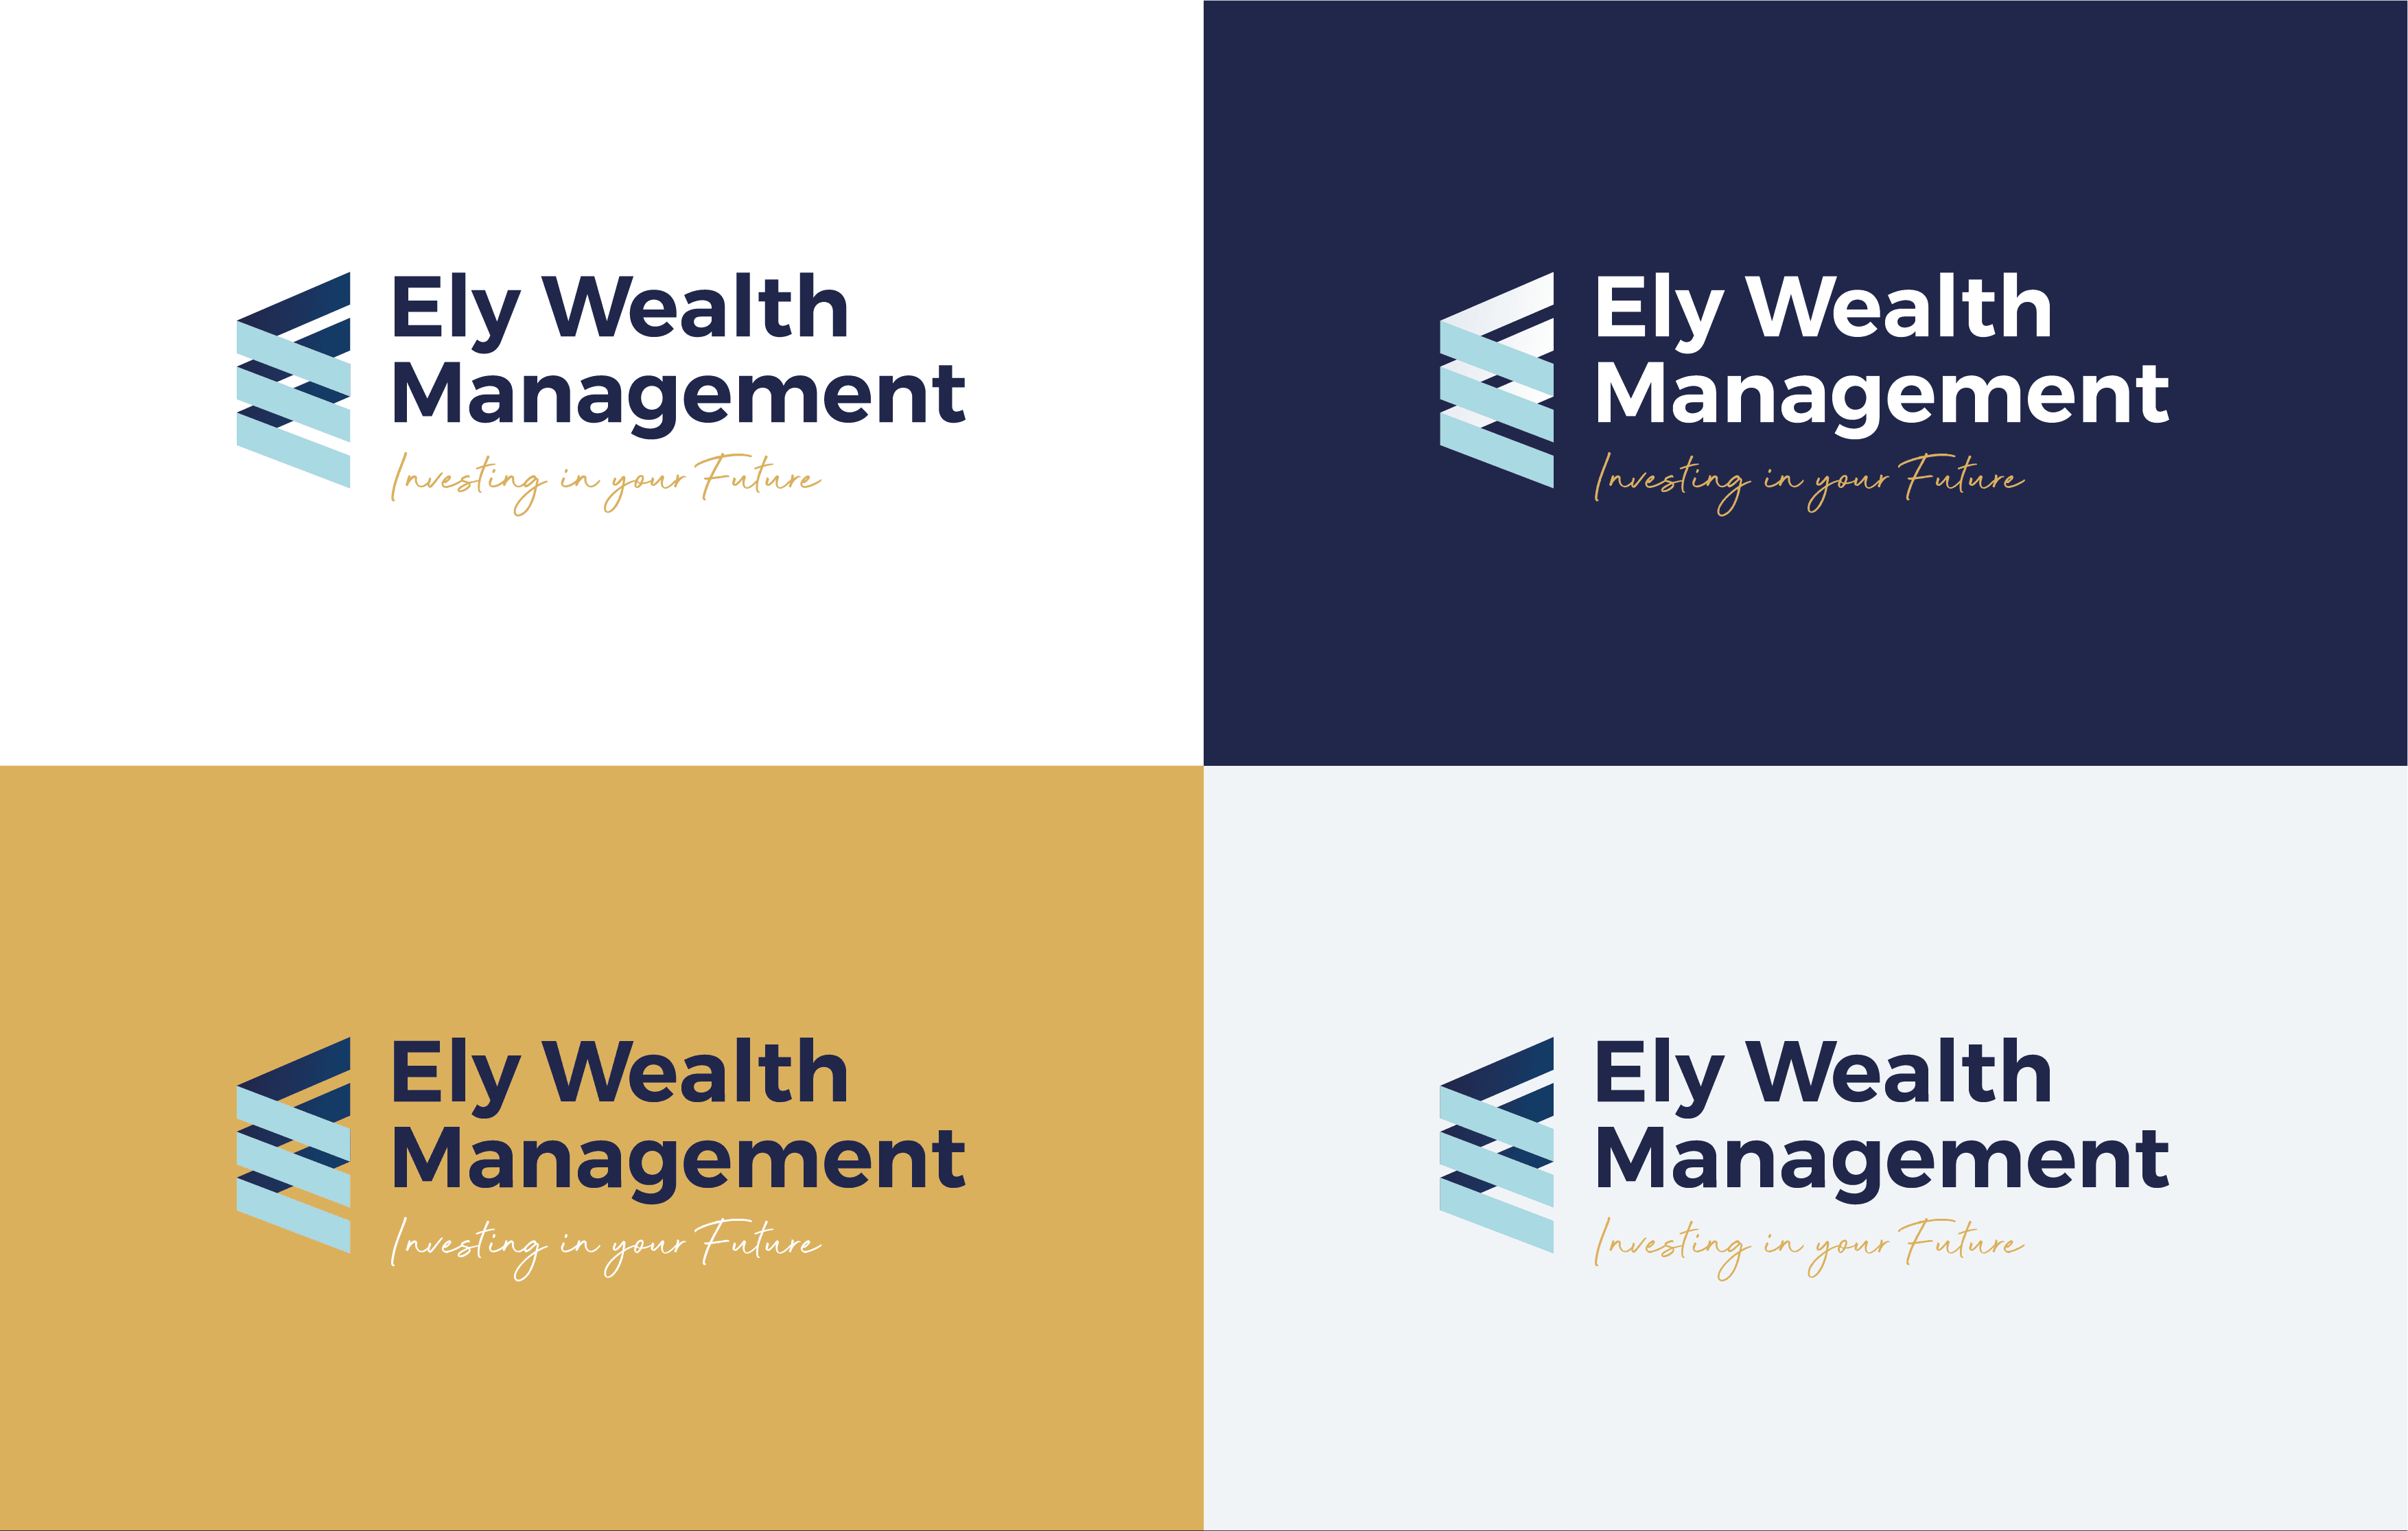 Ely Wealth management 4 way